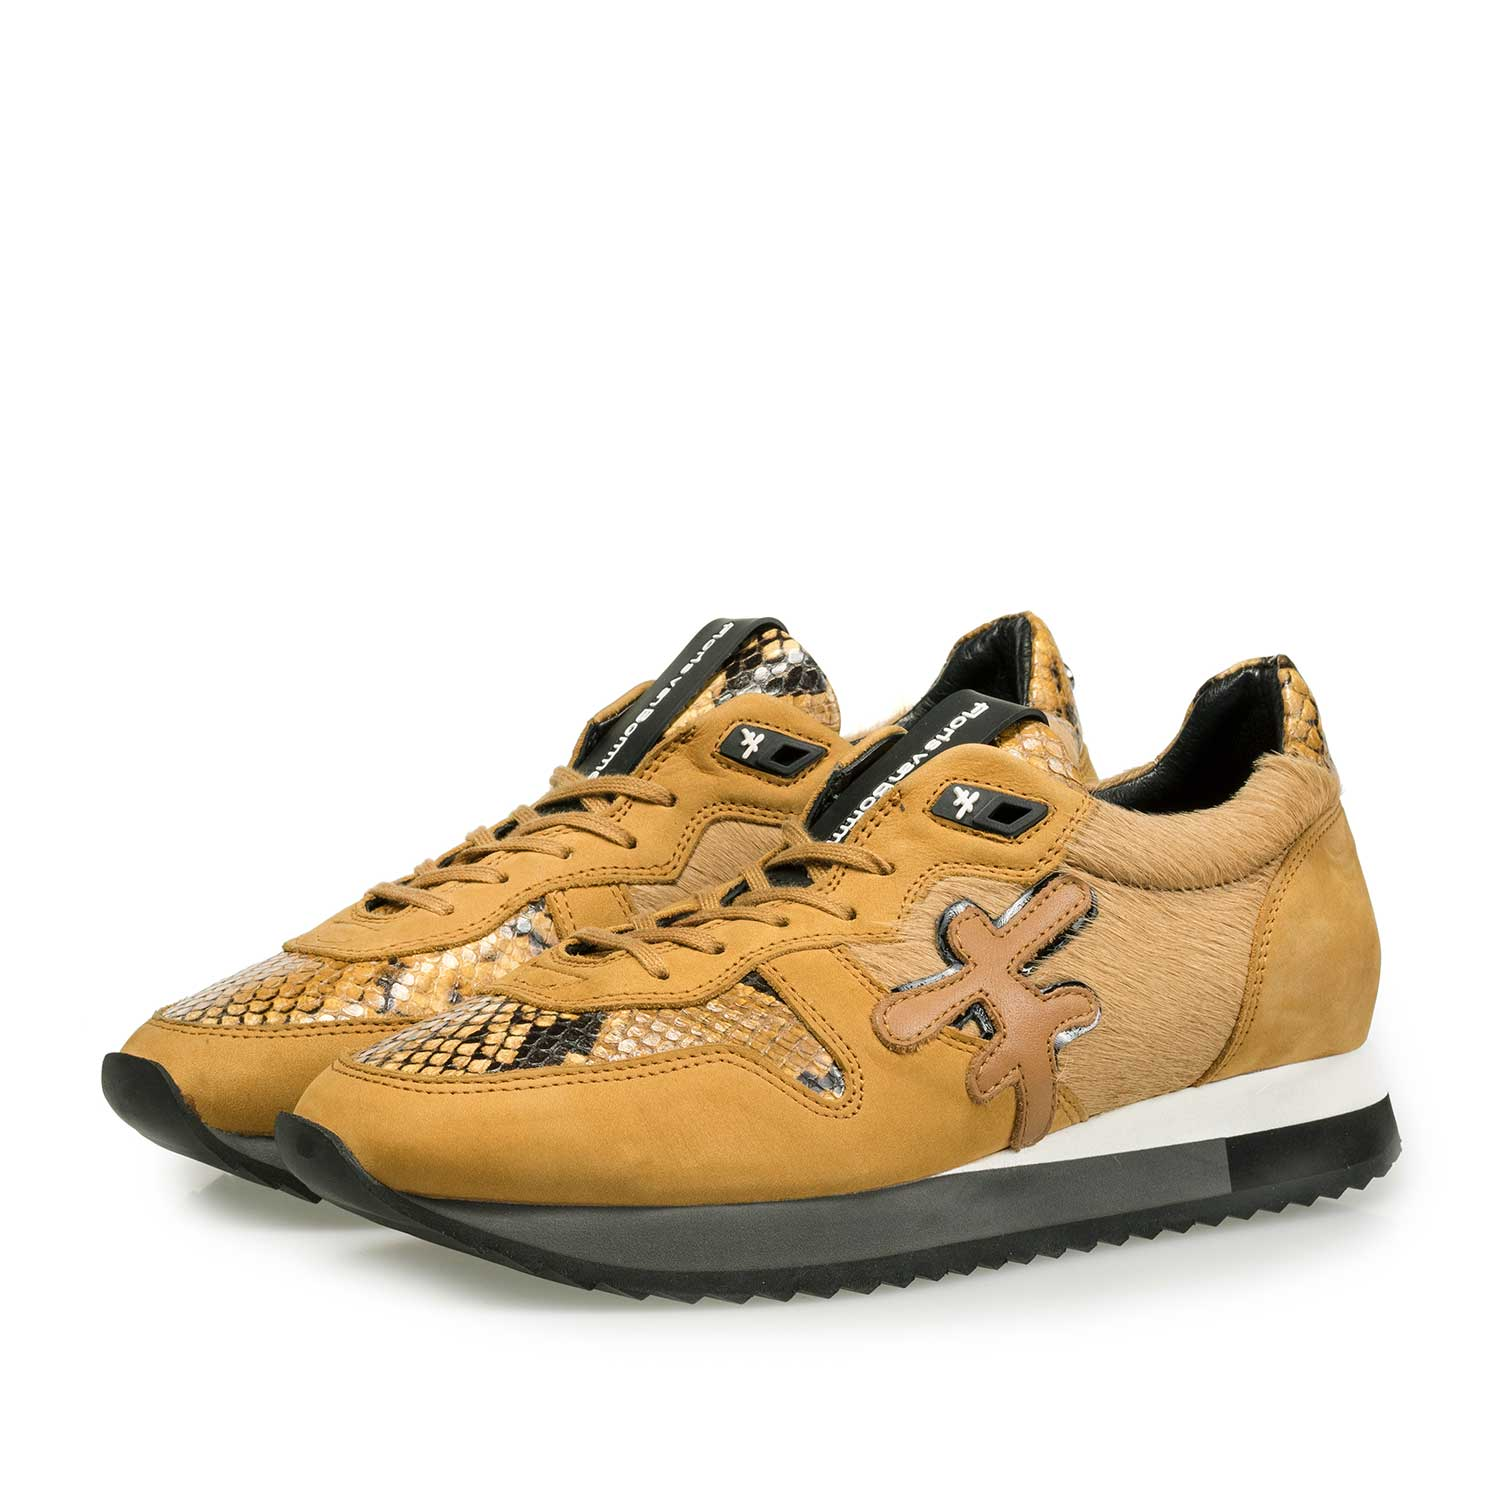 85256/01 - Ochre yellow sneaker with pony hair